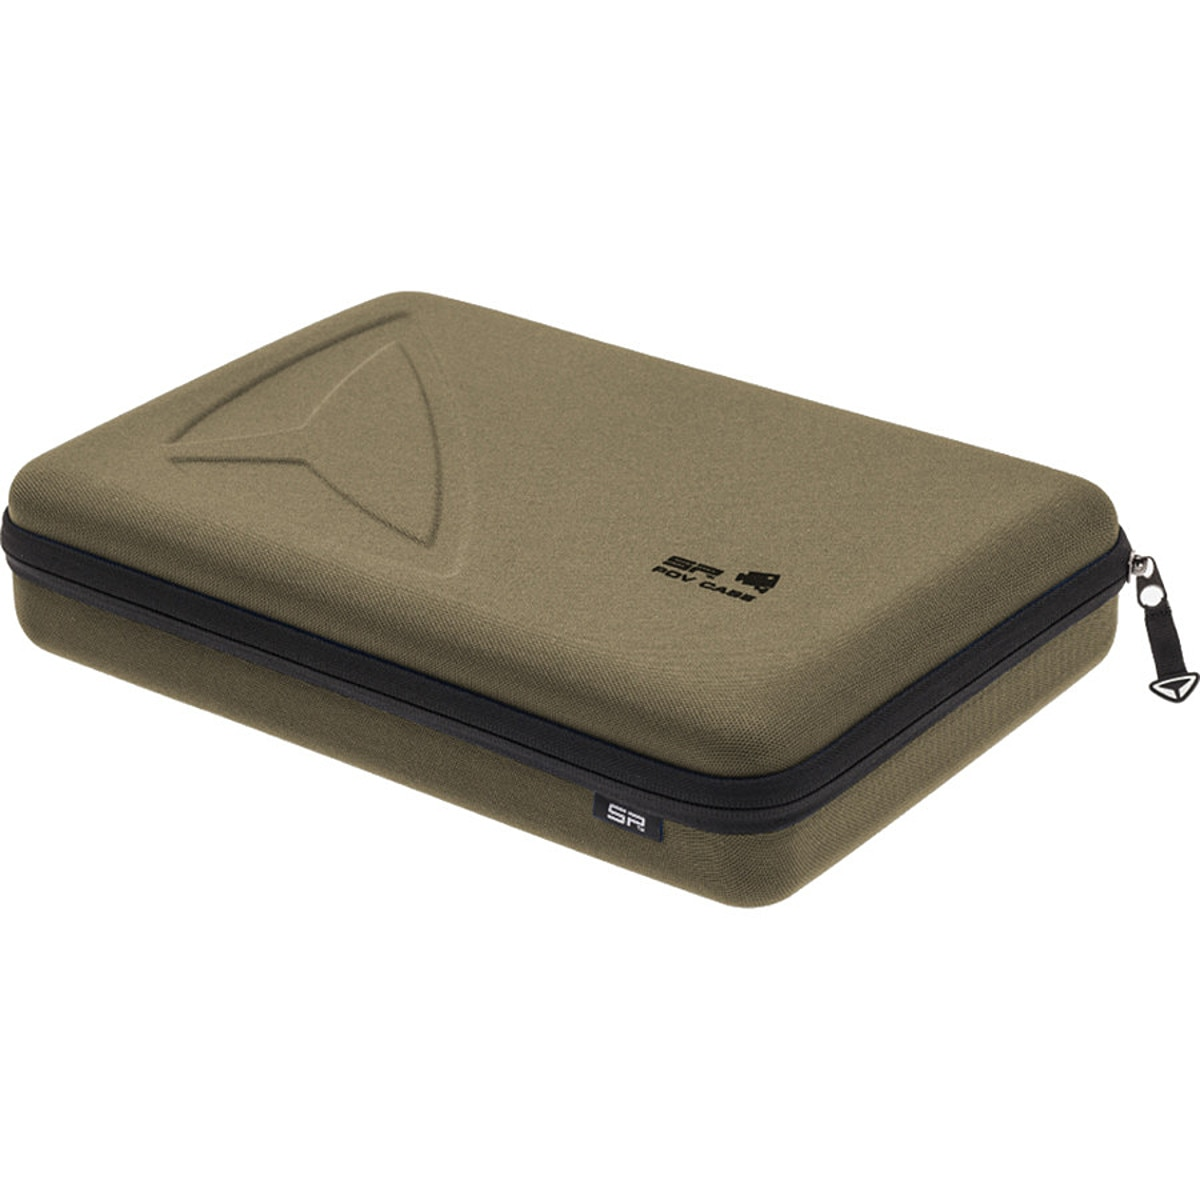 Buy Now SP Gadgets P.O.V. Case Large Olive, One Size Before Too Late